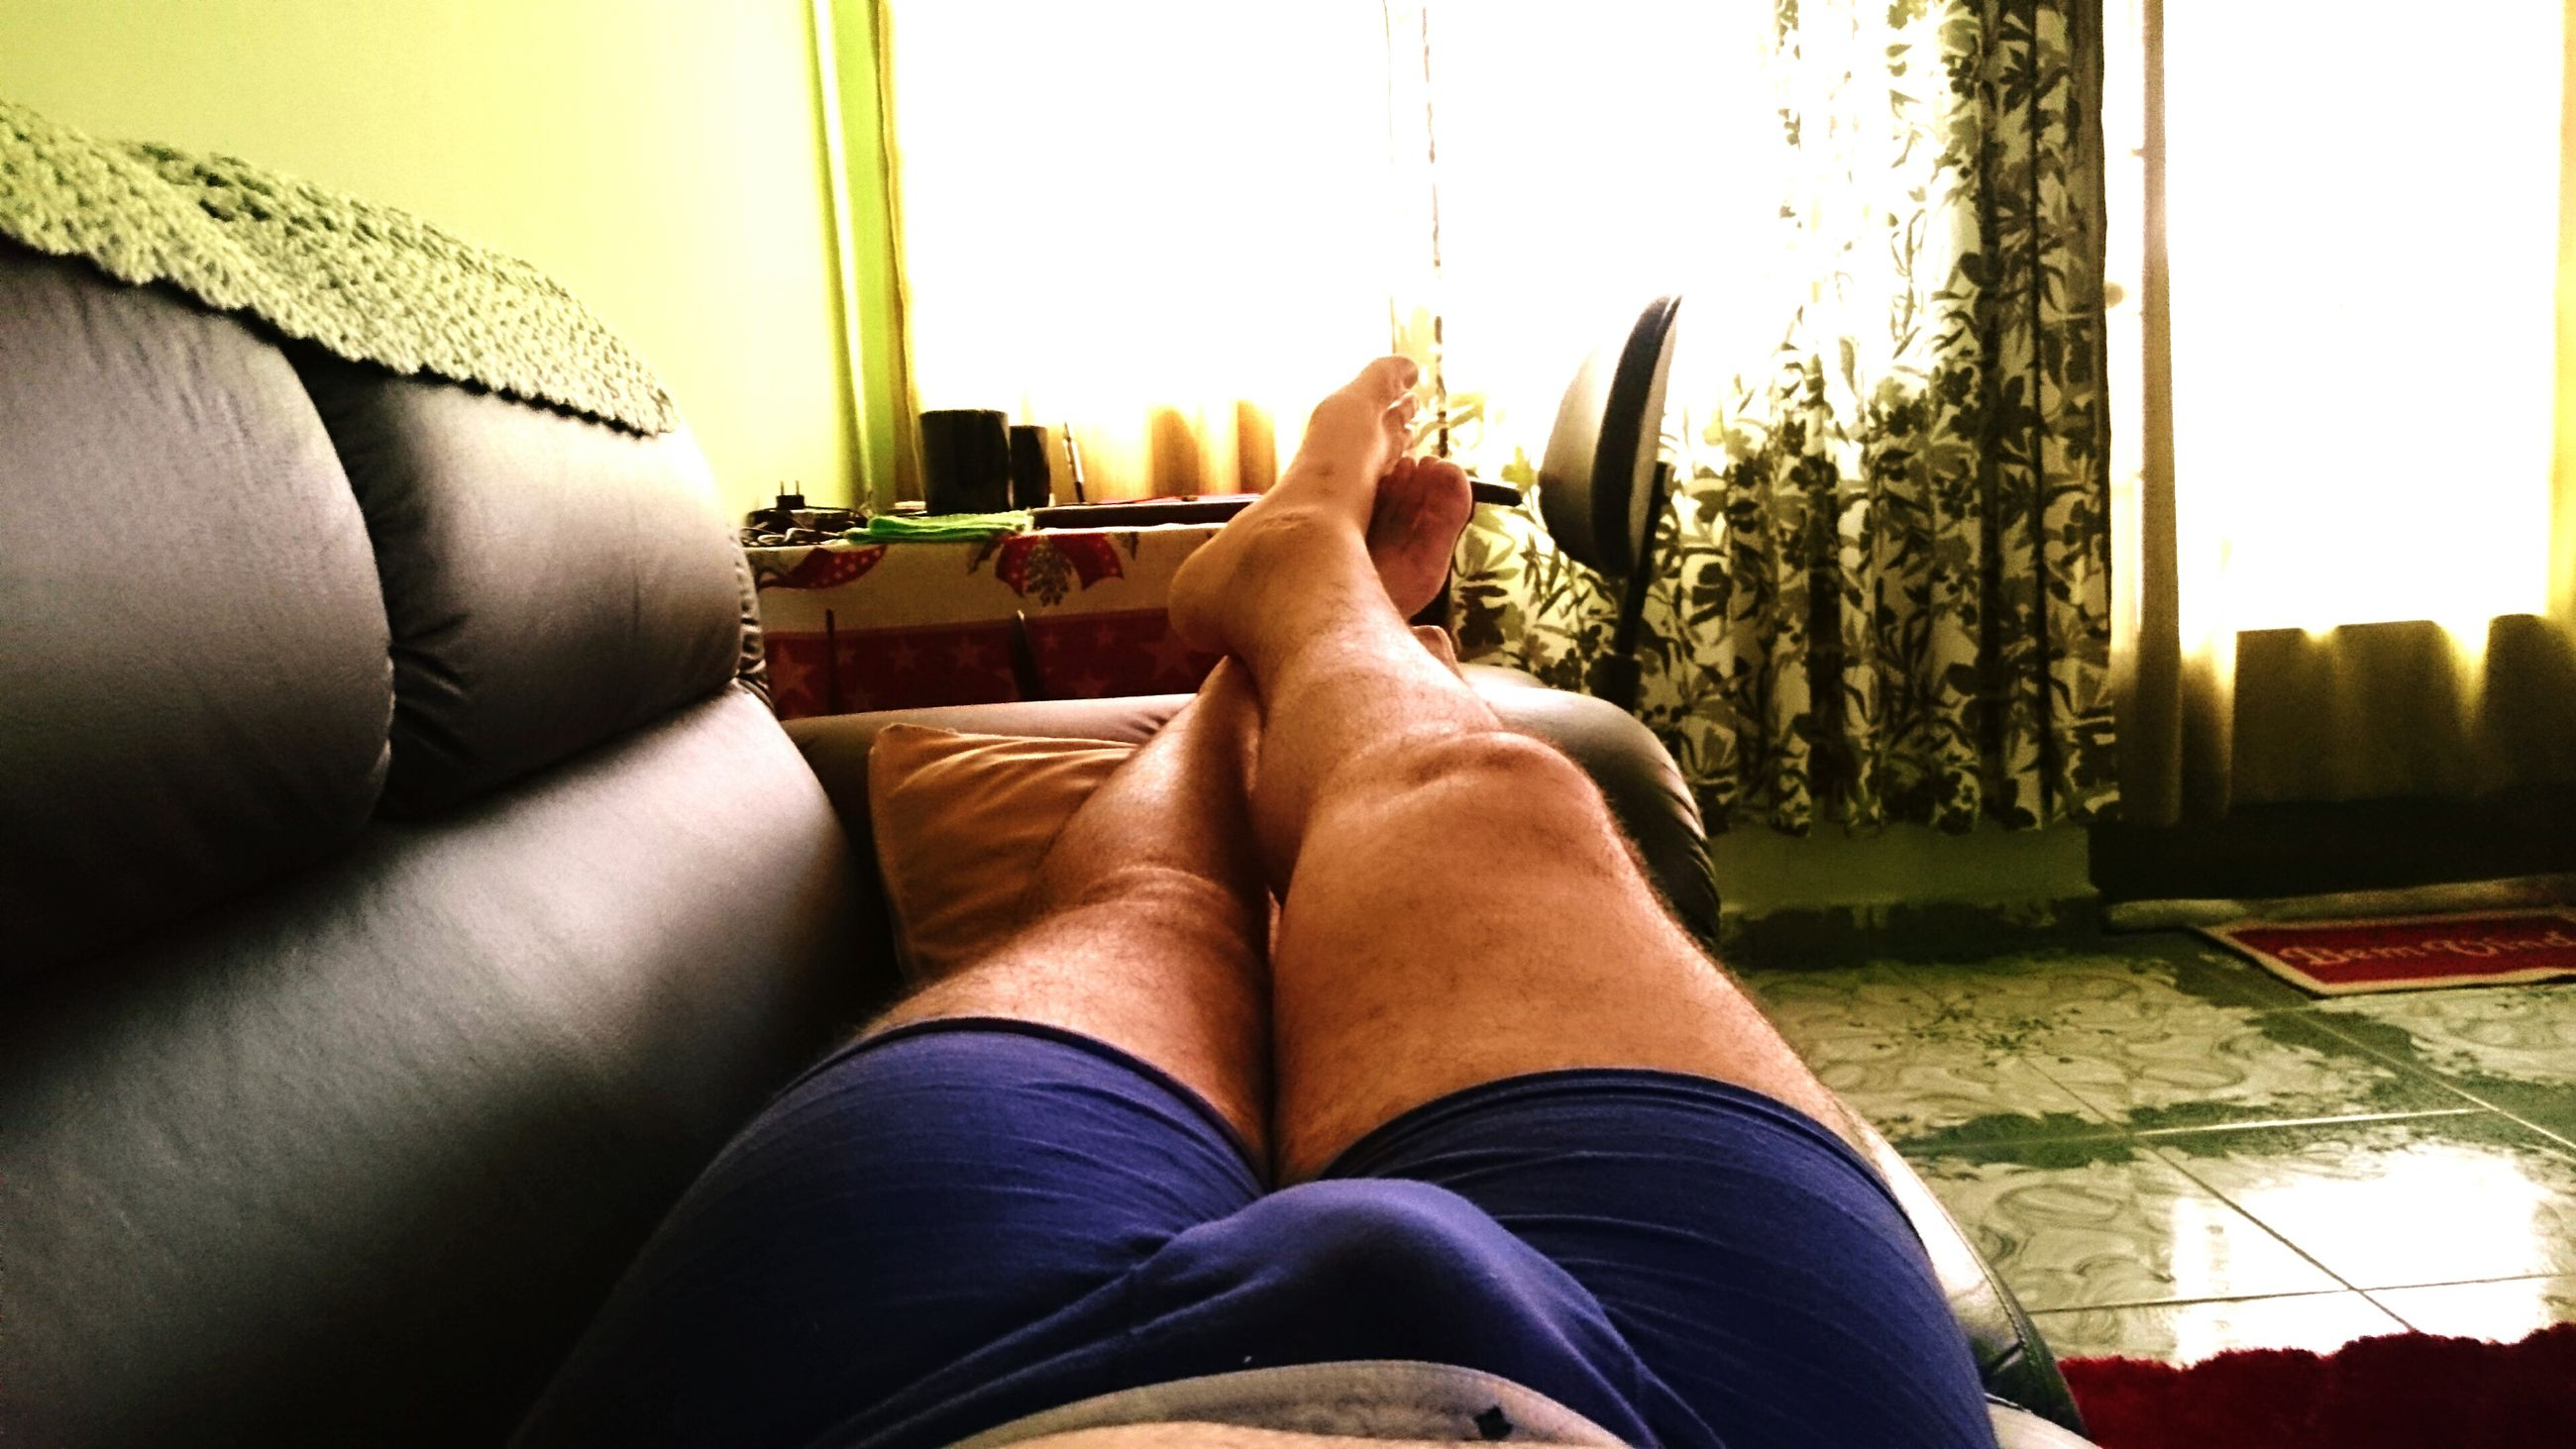 low section, person, personal perspective, lifestyles, relaxation, legs crossed at ankle, sitting, human foot, leisure activity, barefoot, sunlight, part of, resting, indoors, shoe, relaxing